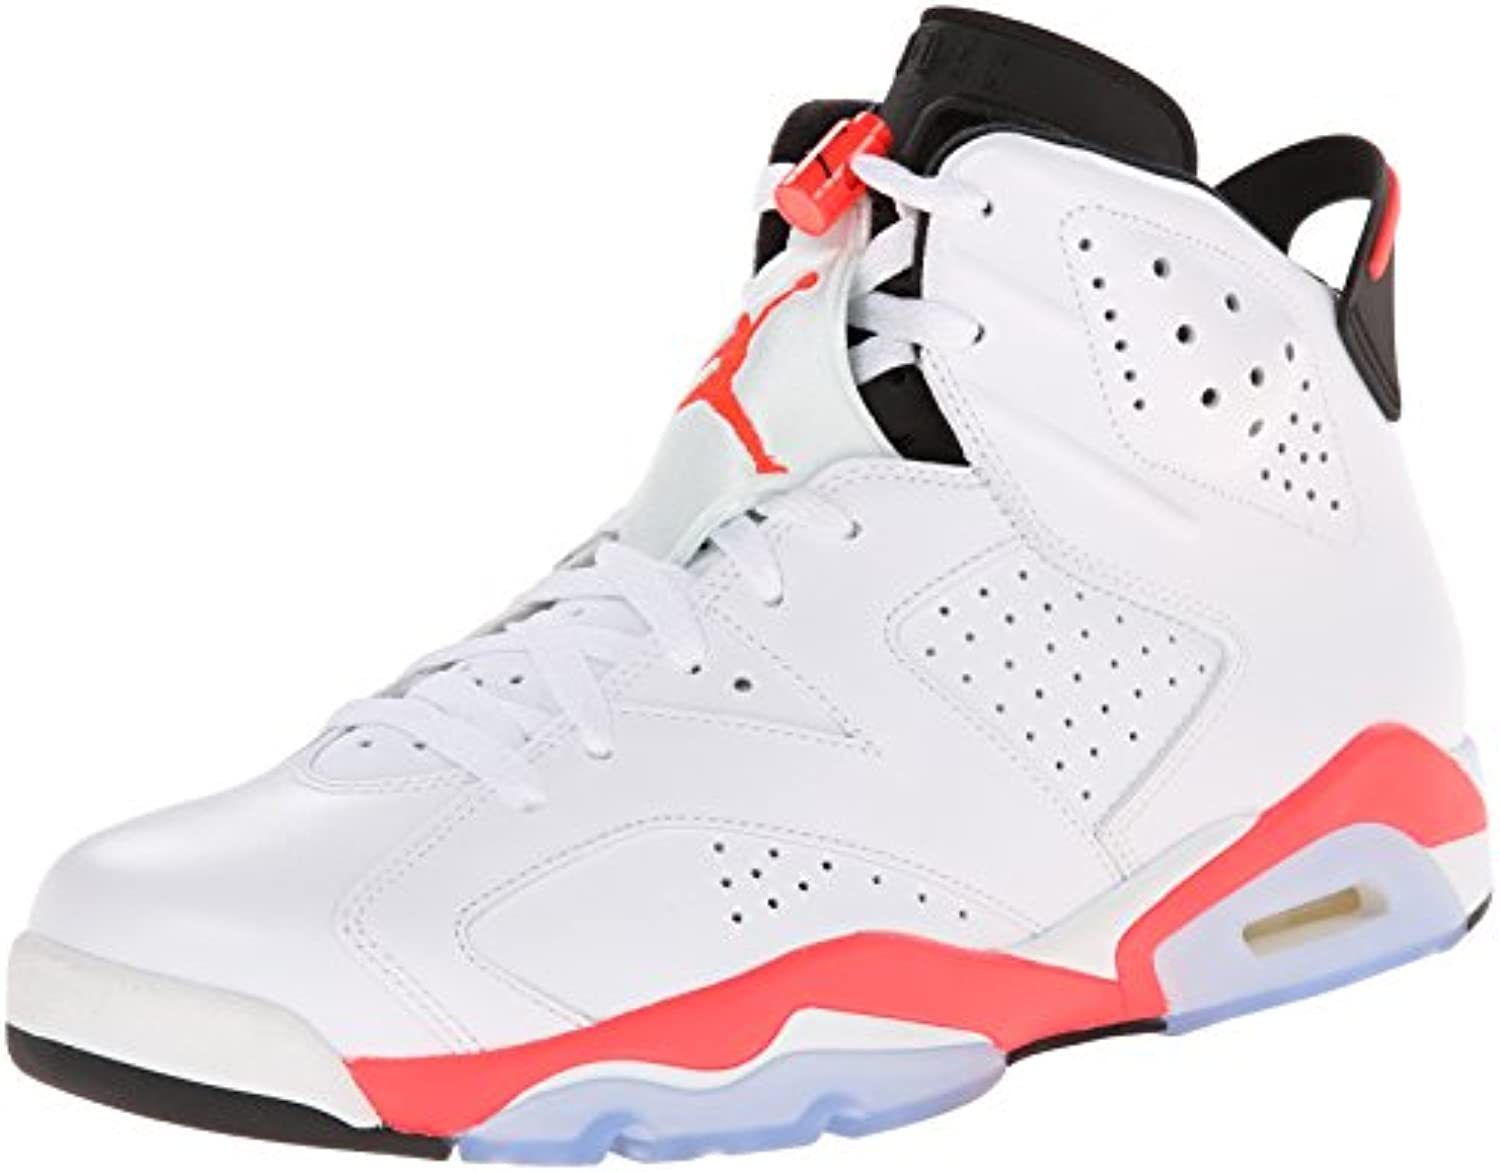 Nike Air Jordan 6 Retro 'White Infrared' White/Infrared-Black Trainer